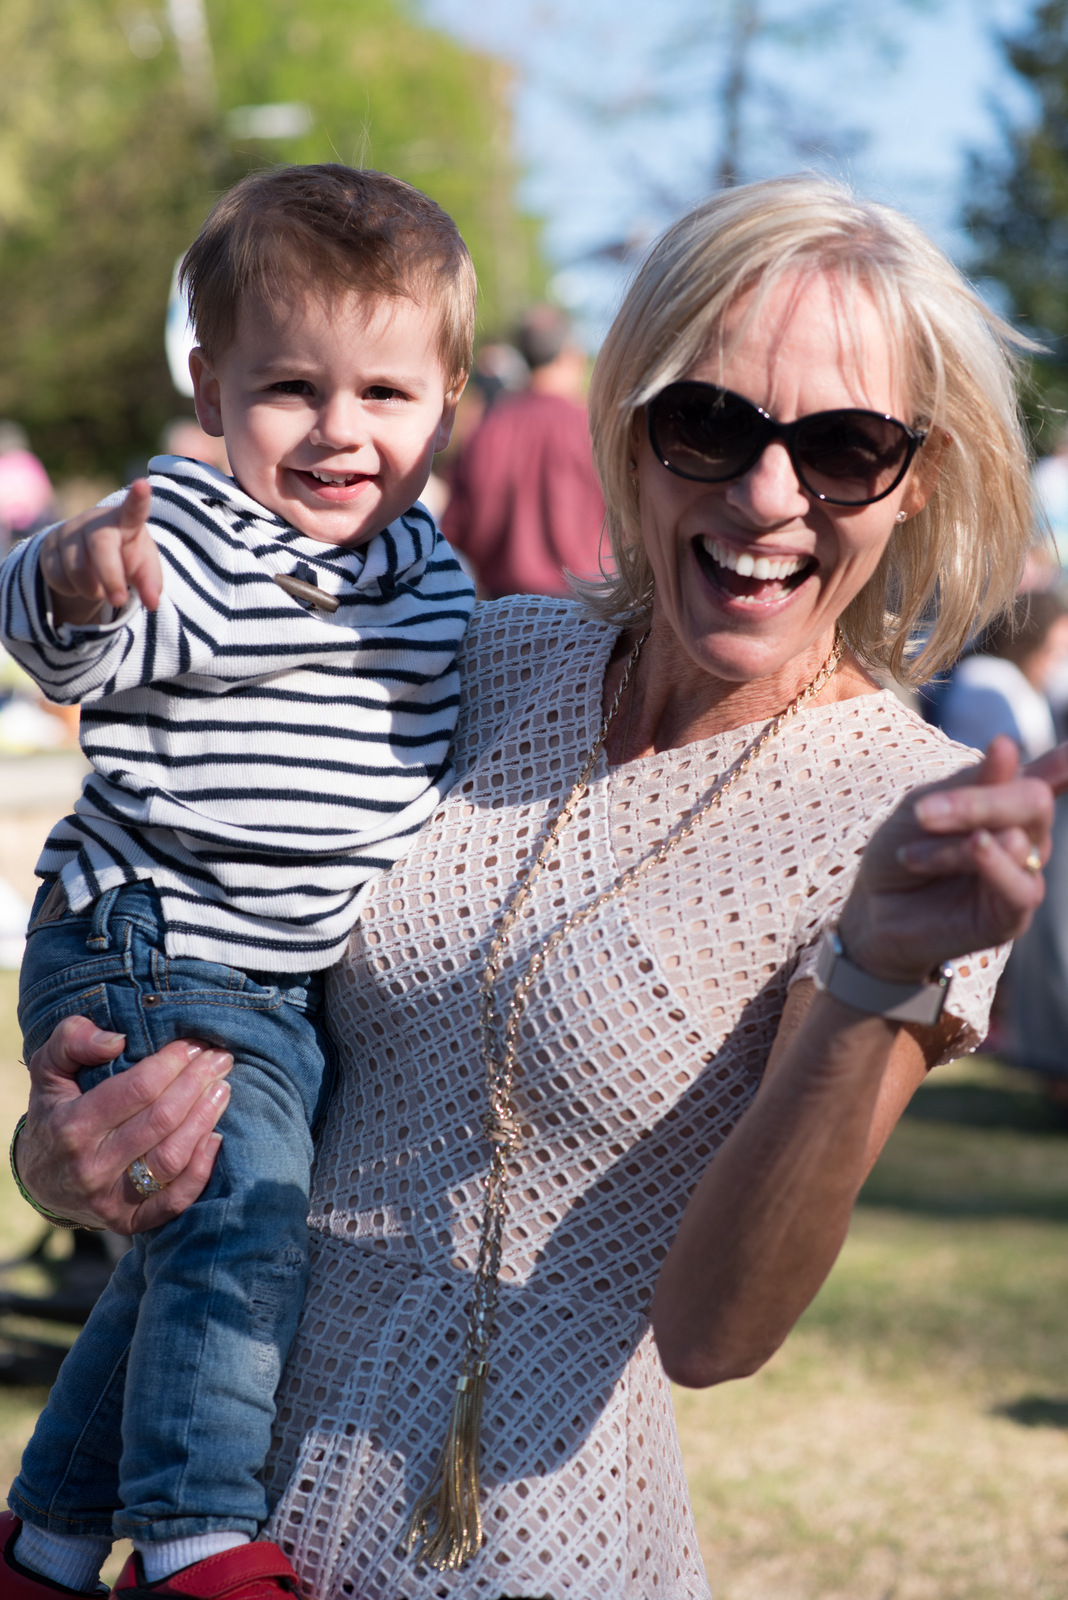 Gitte, who was the most fashionable grandma at the festival, wearing her BCBG top.